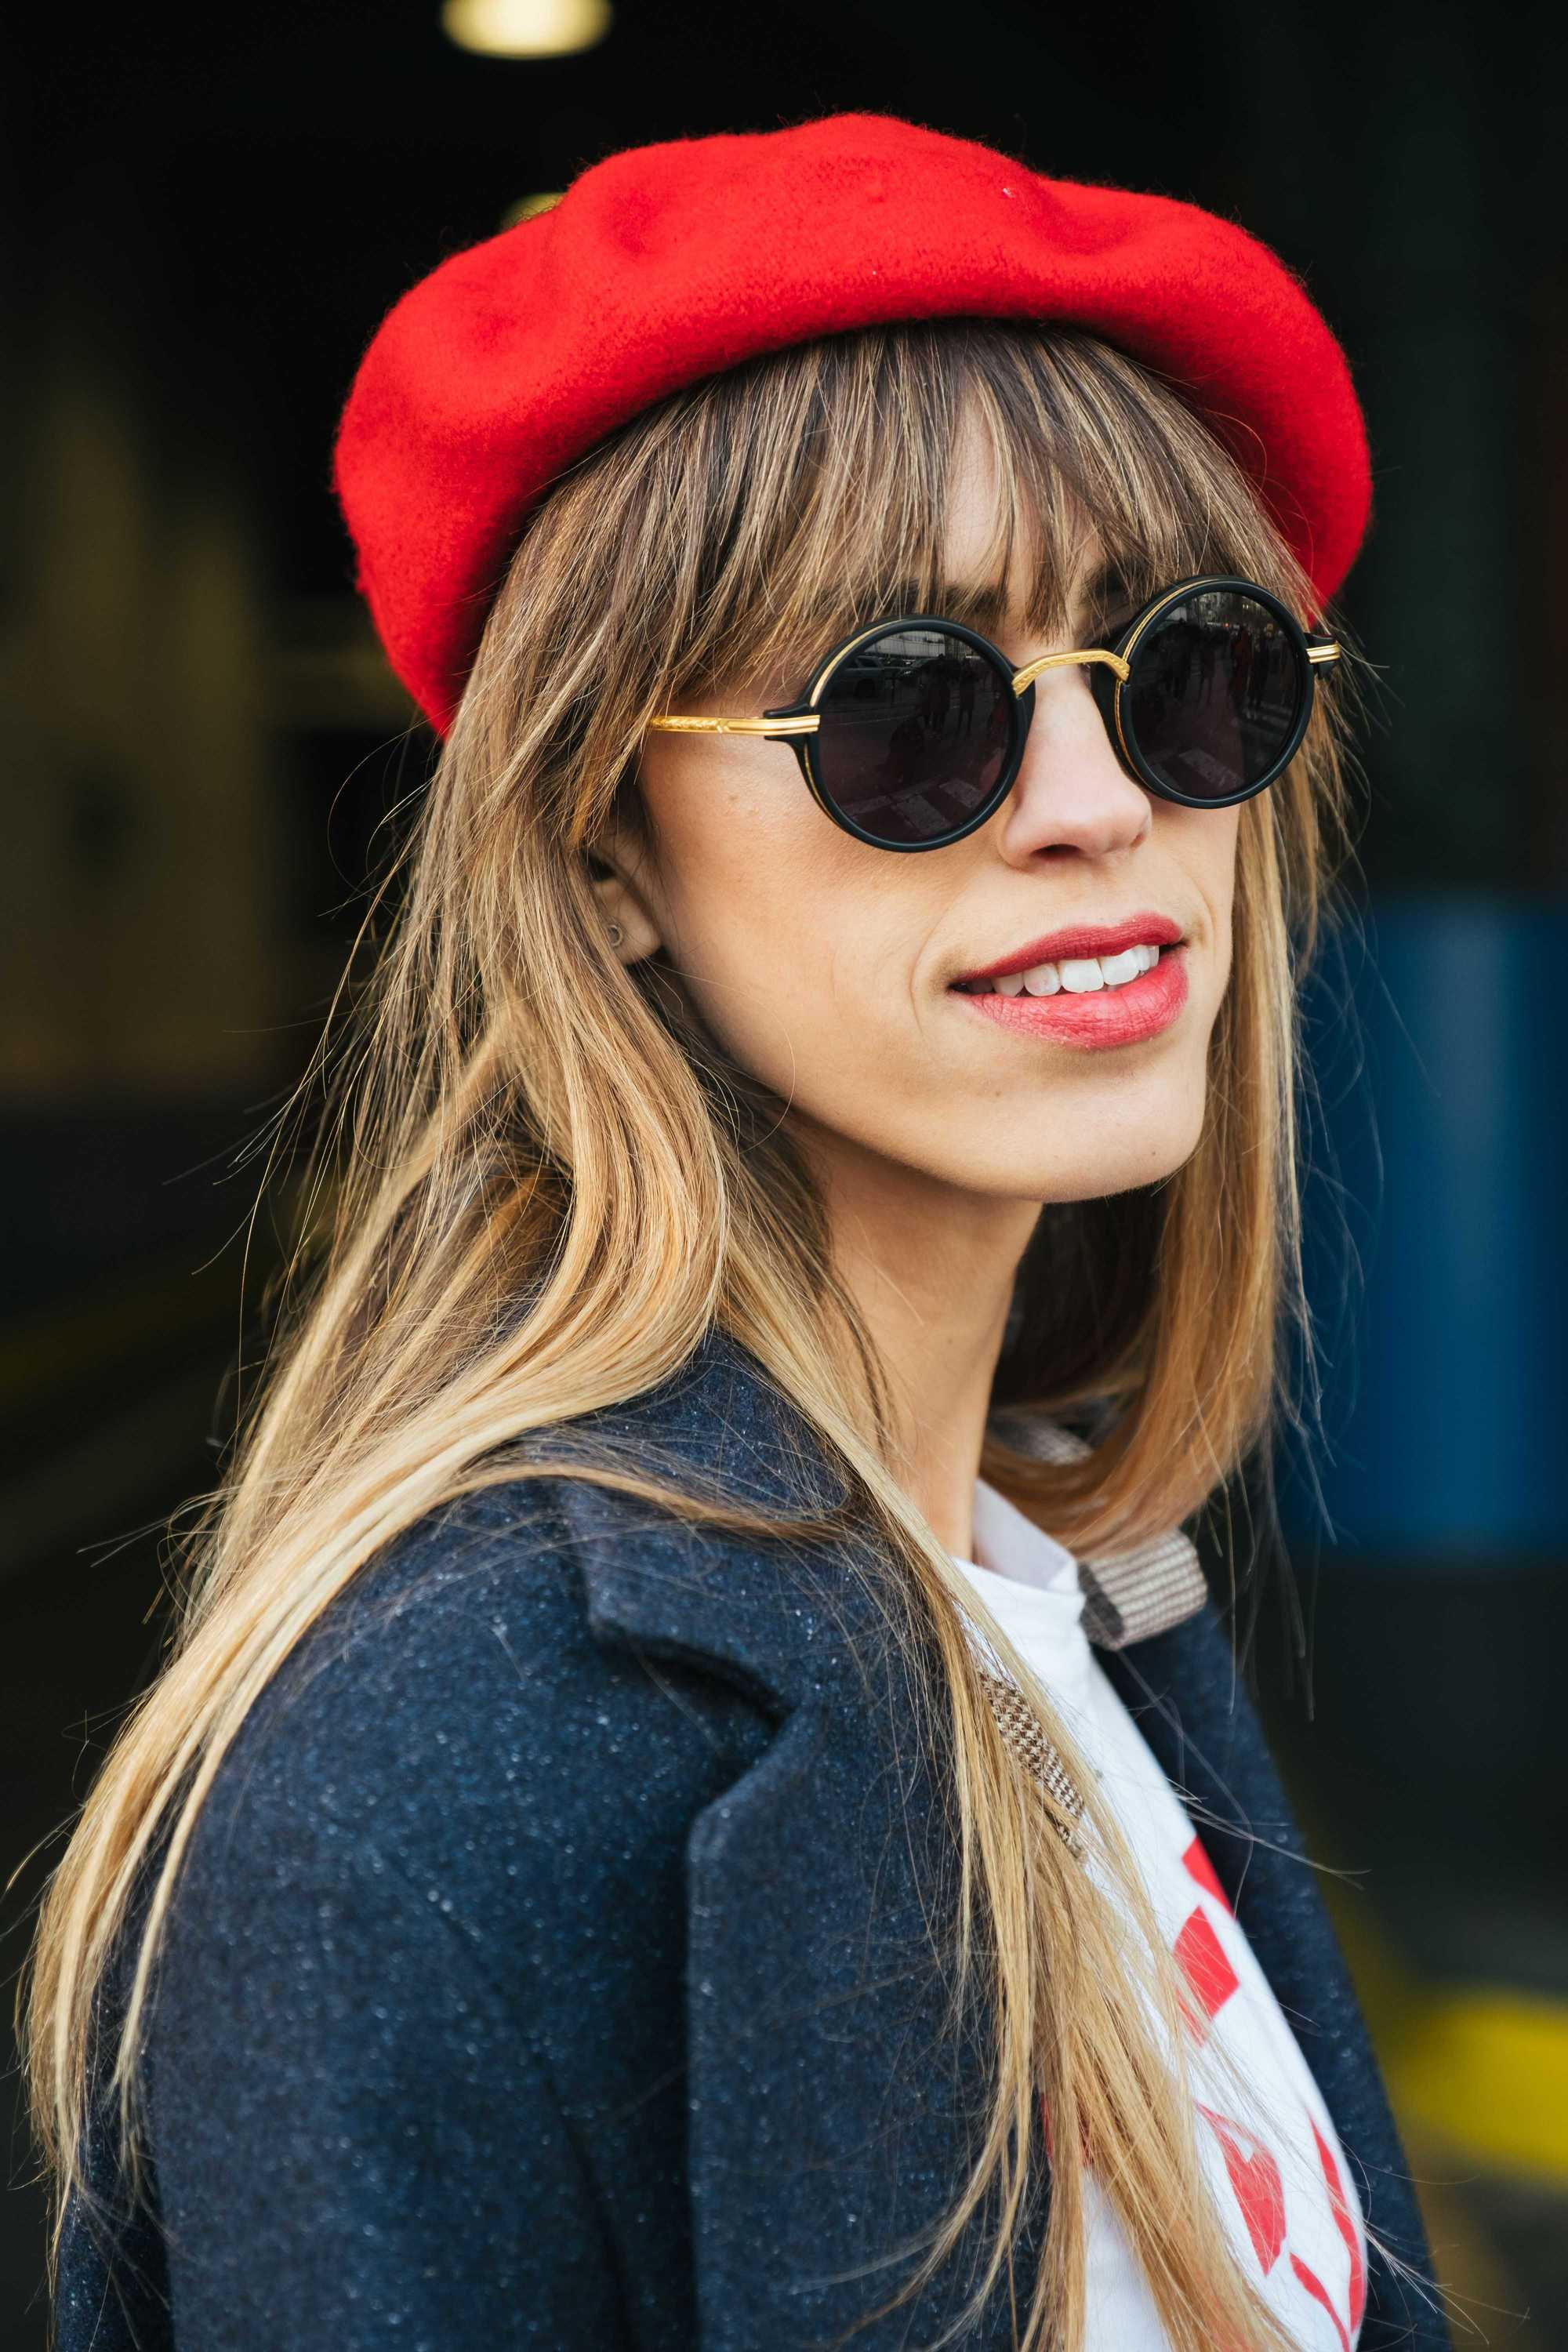 Haircut ideas for thin hair: Woman with honey brown long straight, fine hair with wispy straight bangs, wearing sunglasses and red beret